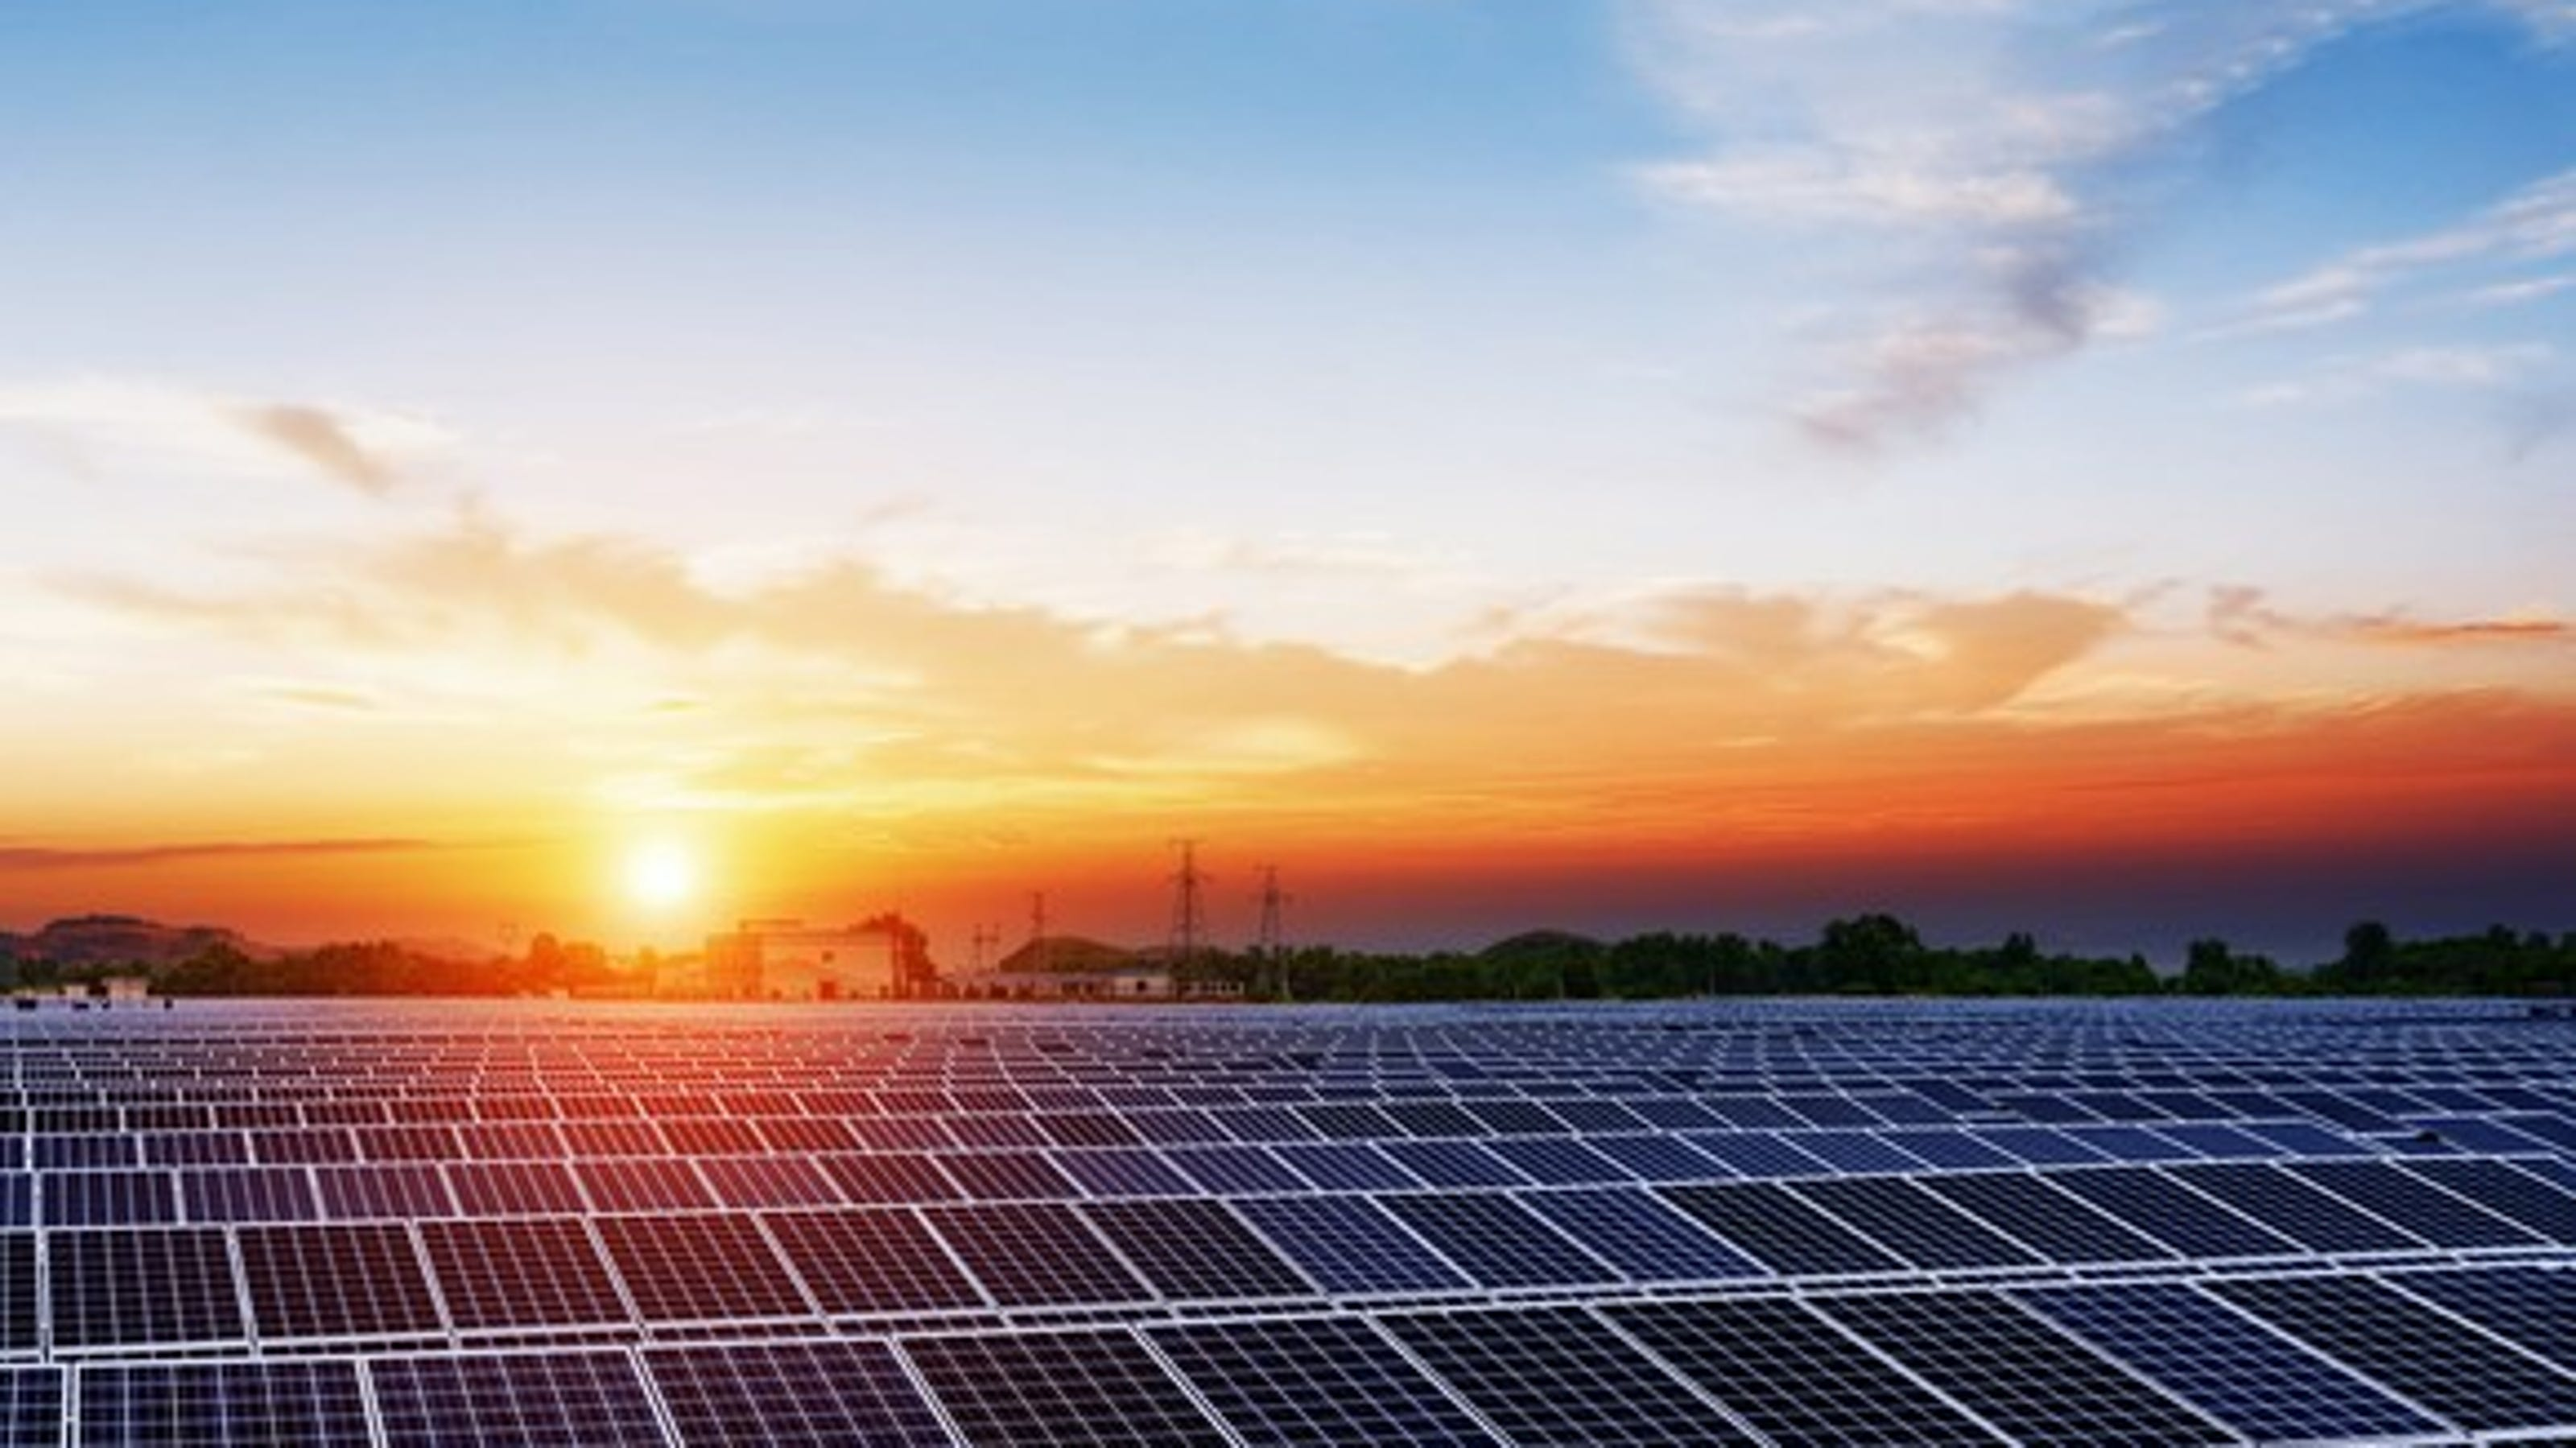 Trump S 30 Tariff On Imported Solar Panels May Cost Jobs